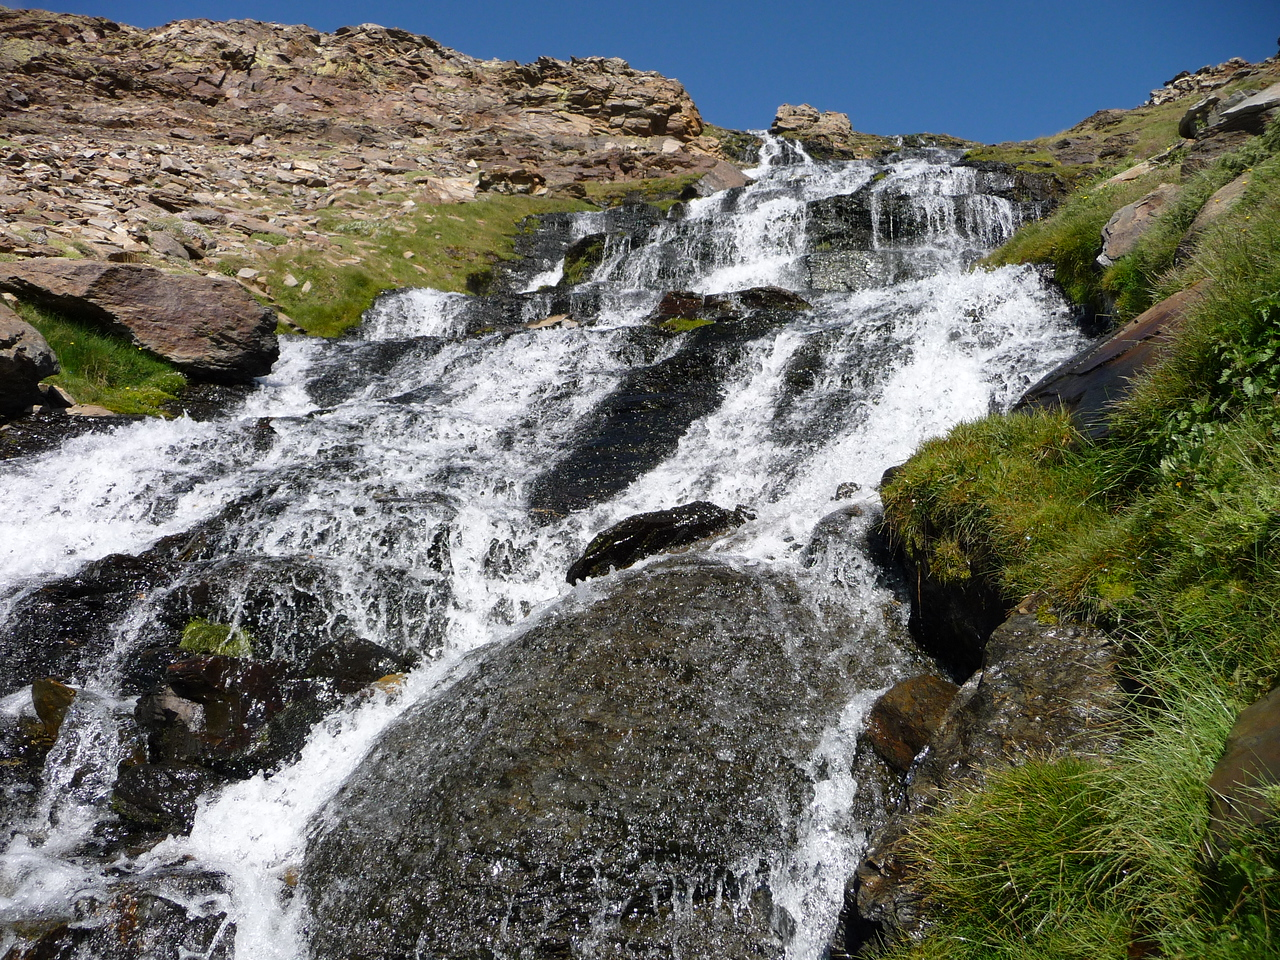 Water from Laguna Hondera at the base of Pico Mulhacen cascading over the Chorreras Negras